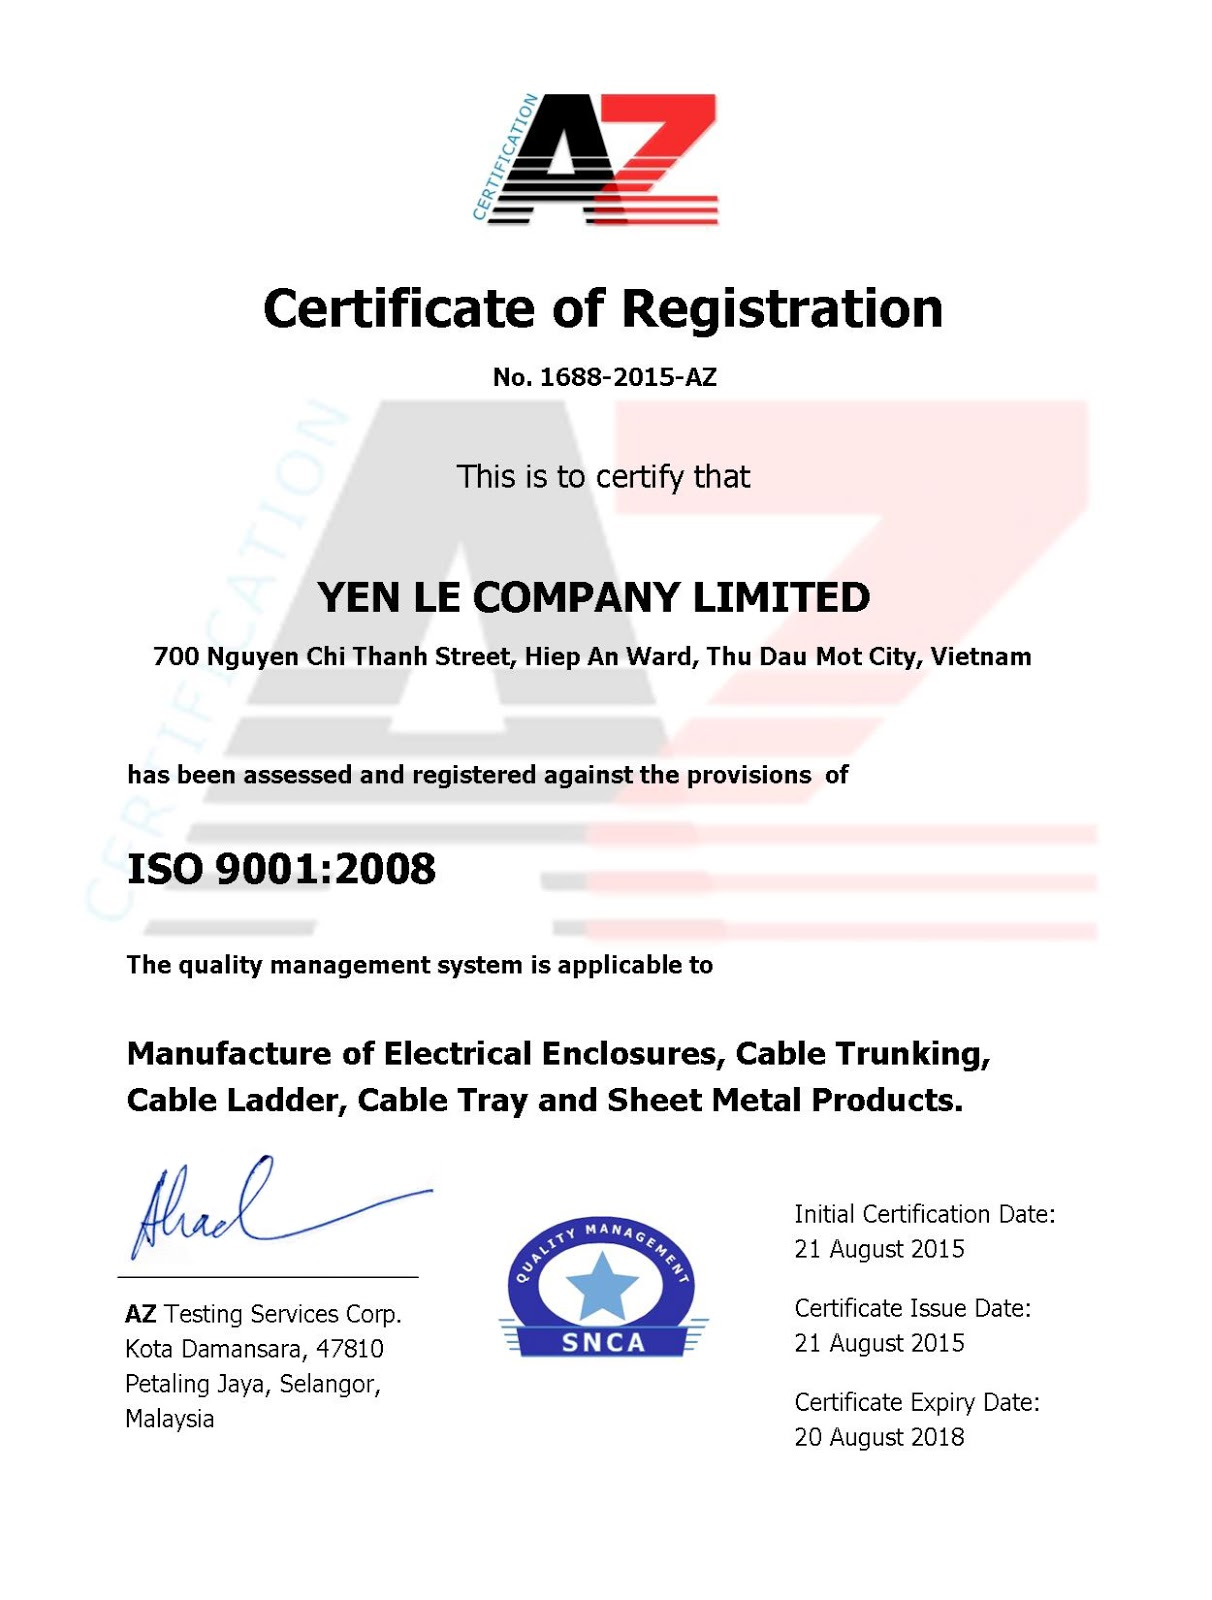 Iso 90012008 certificate vietnam cable tray systems iso 90012008 certificate 1betcityfo Gallery